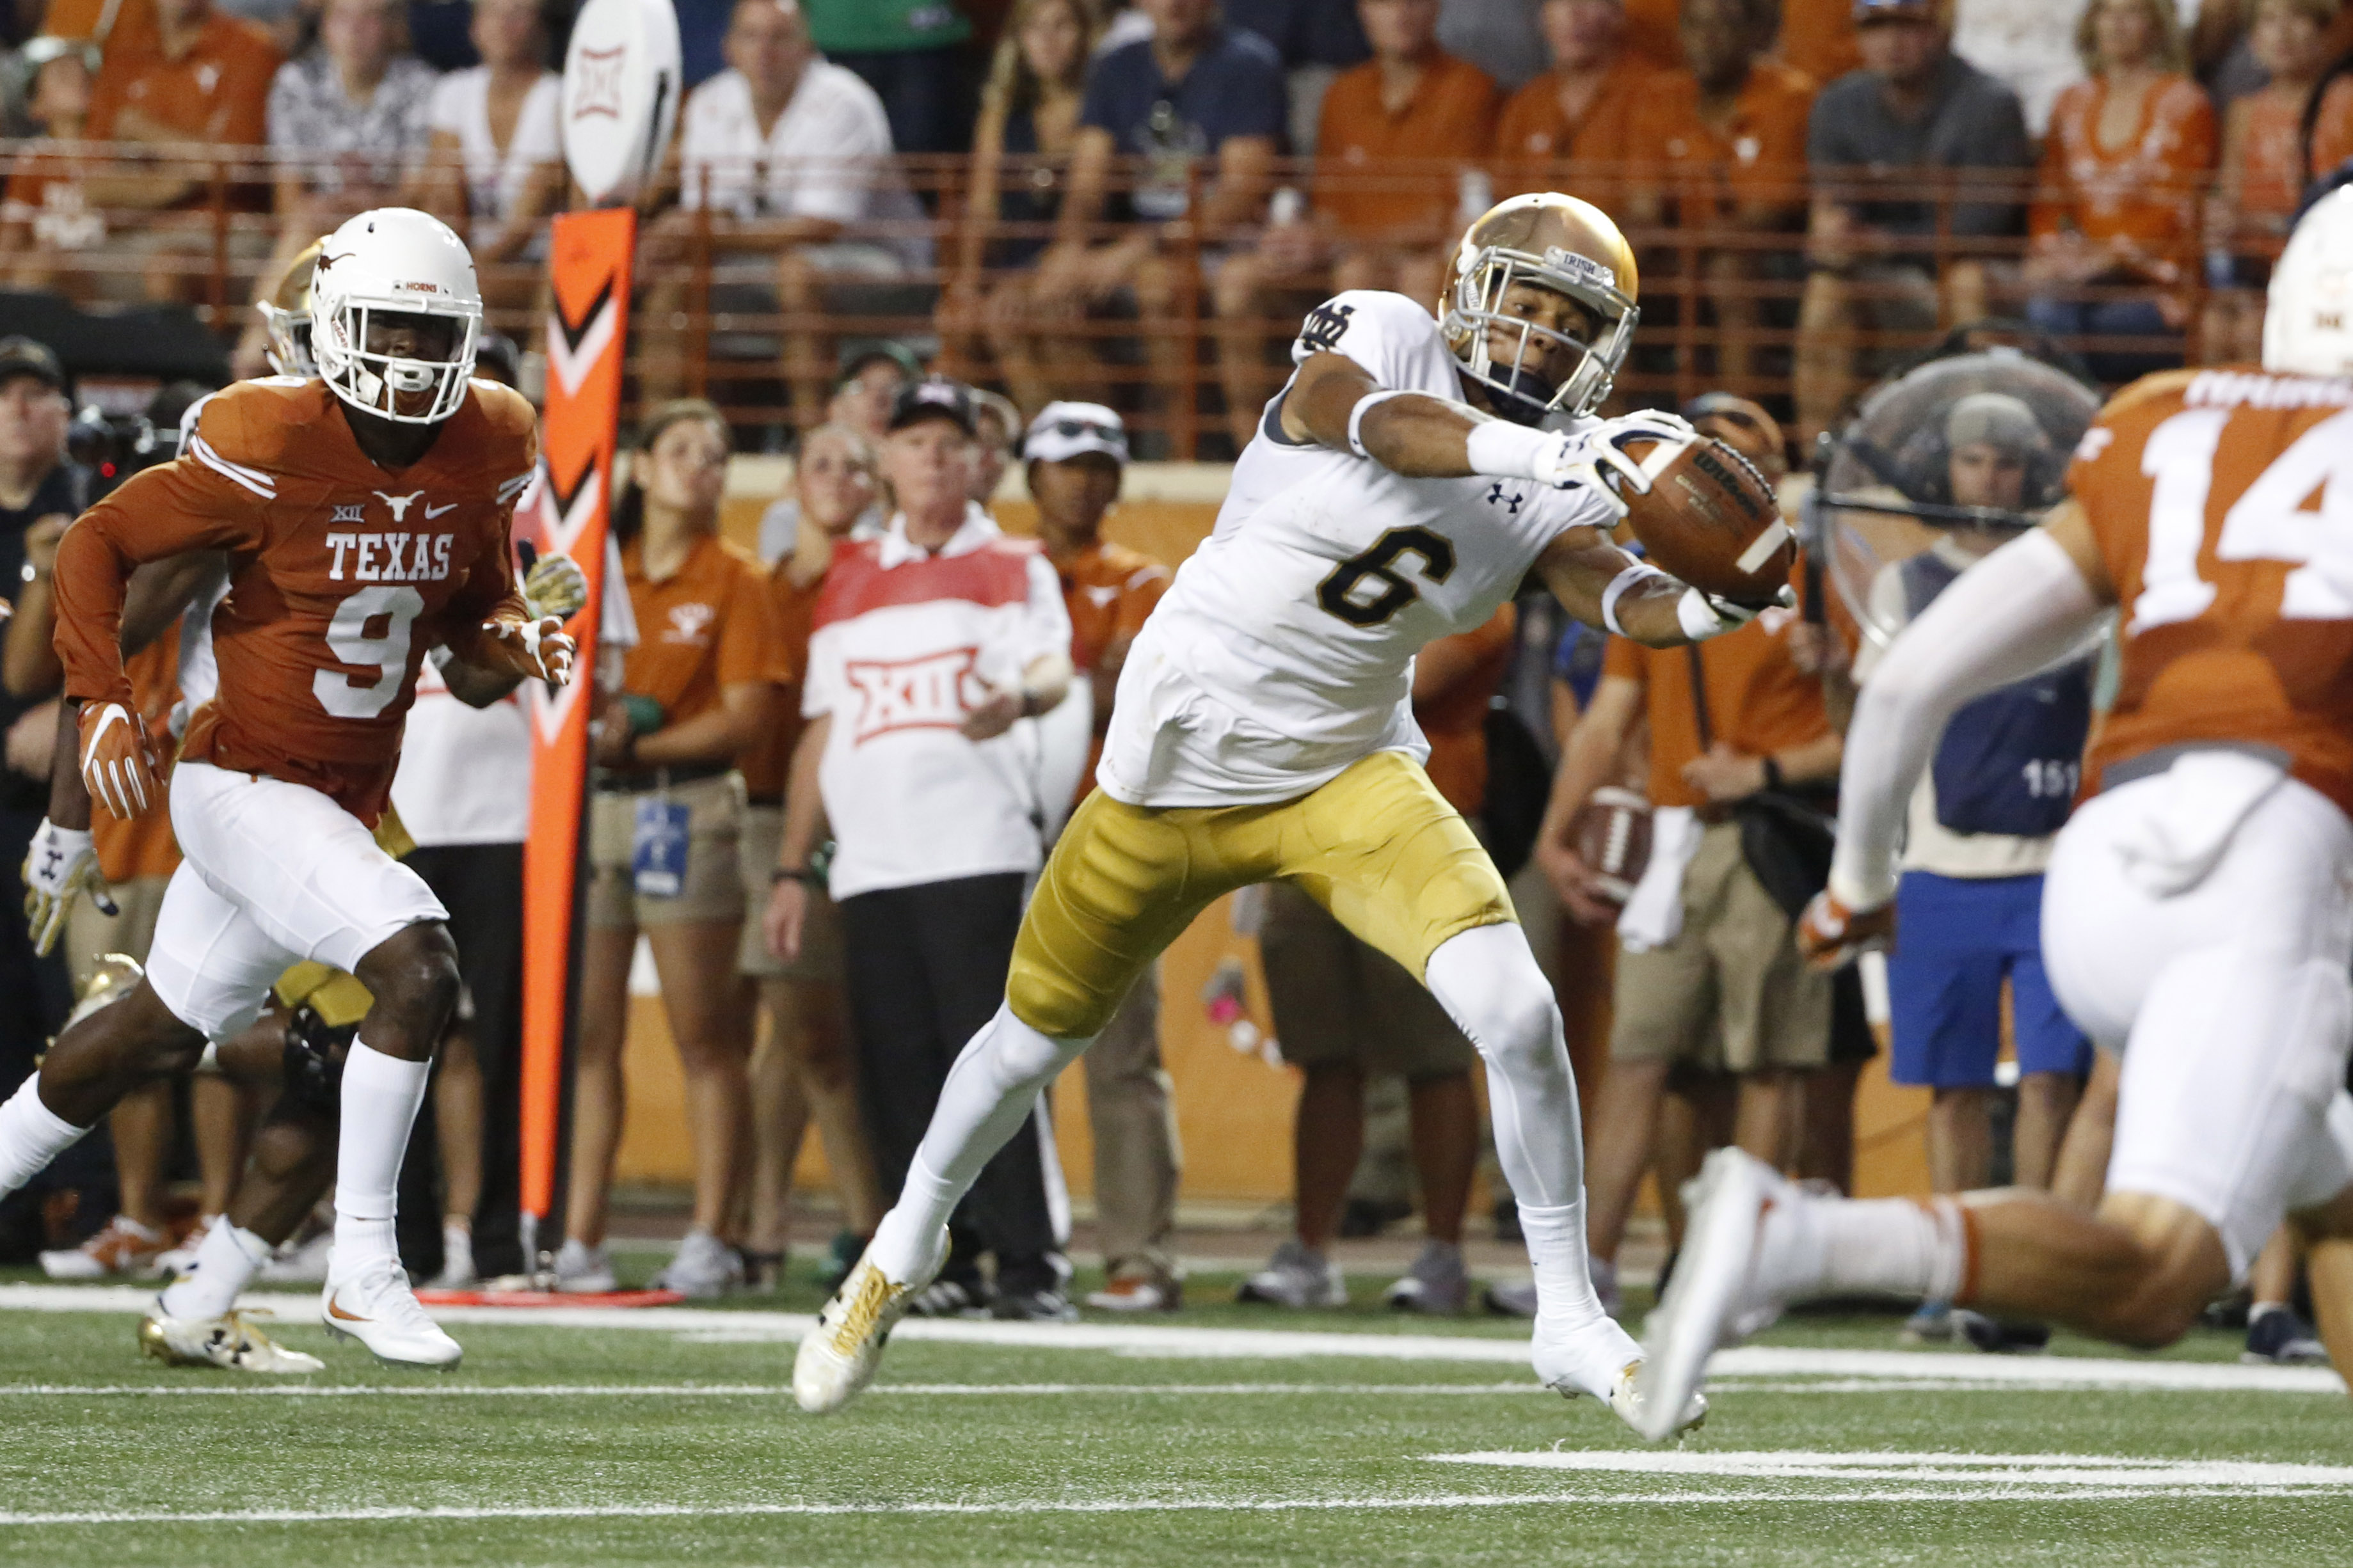 9520573-ncaa-football-notre-dame-at-texas